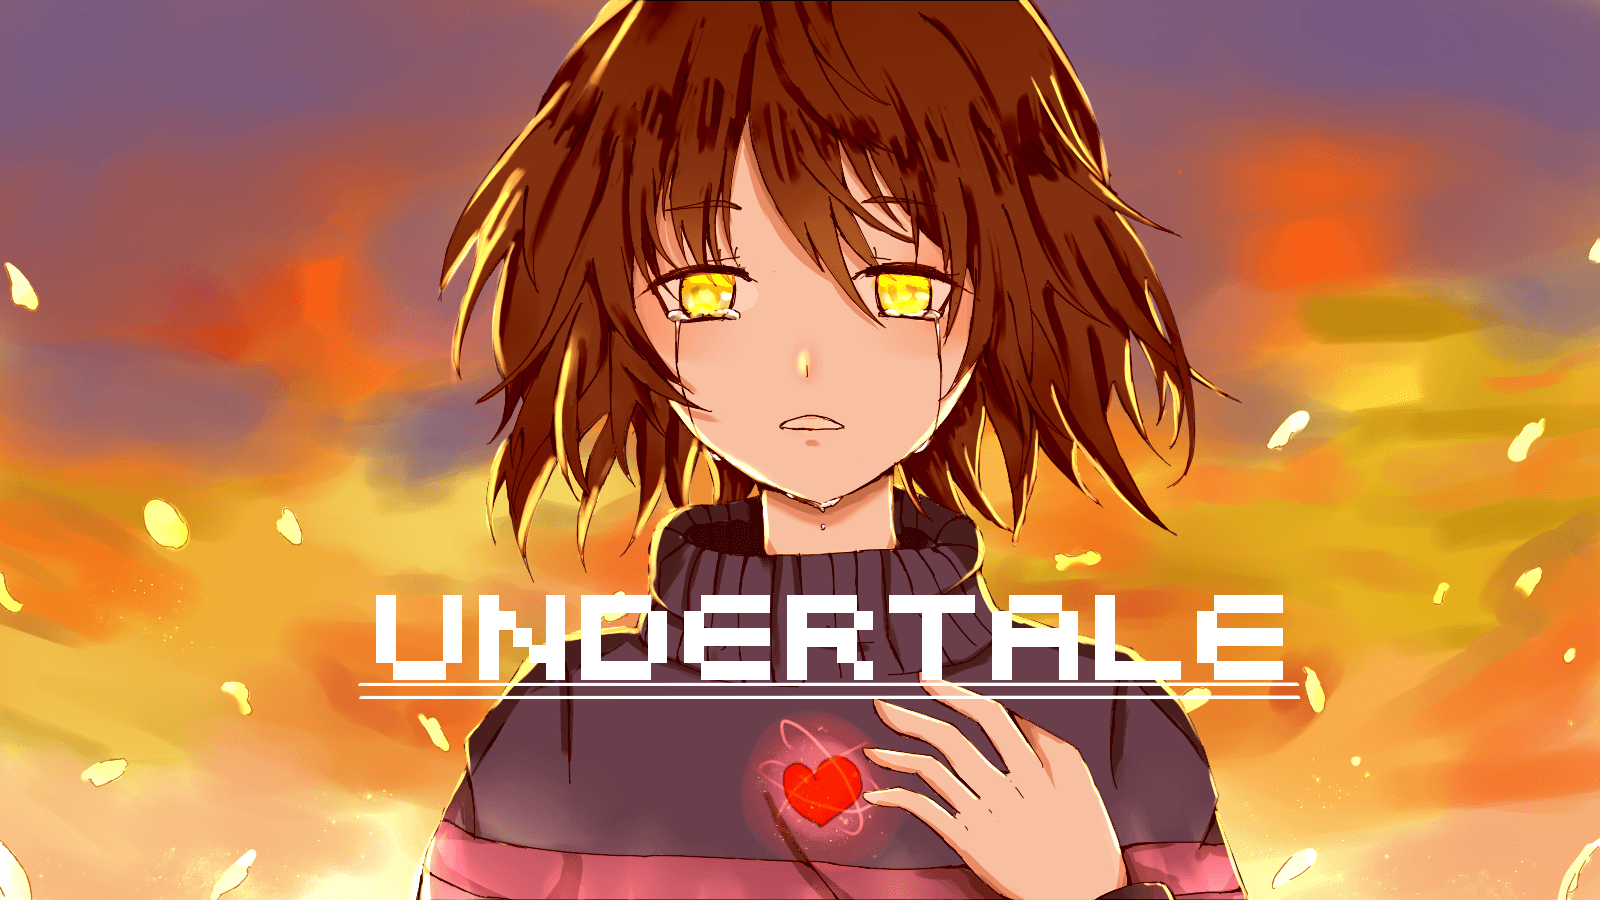 Anime Undertale Wallpapers Wallpaper Cave